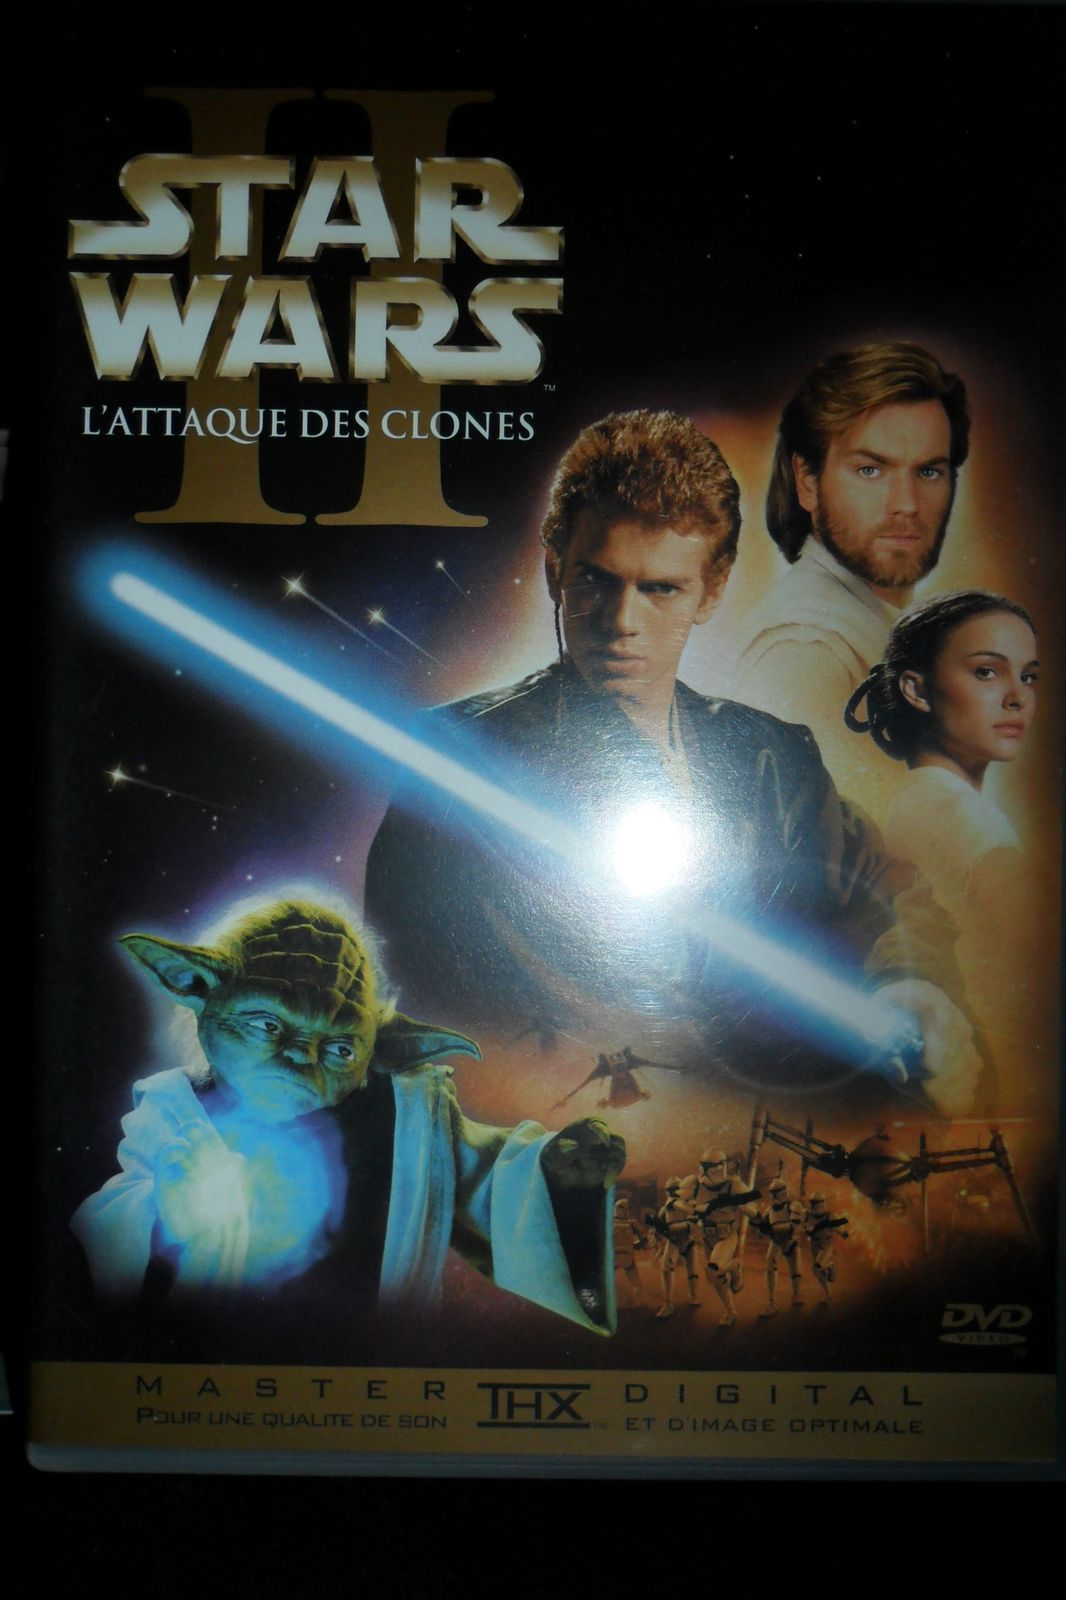 http://idata.over-blog.com/3/18/35/93/jano/film-star-wars/SAM_0018.JPG